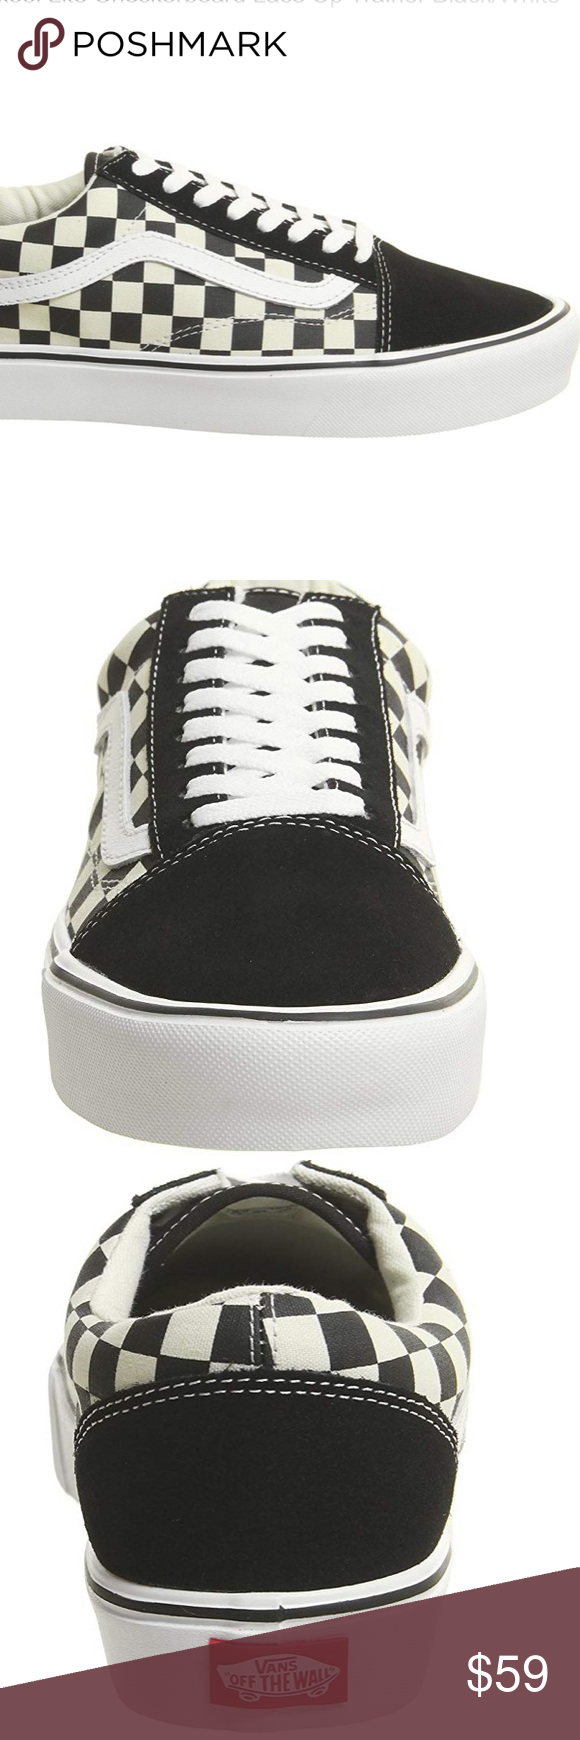 Unisex Old Skool Lite Checkerboard Lace Black And White Vans Lace Up Trainers White Vans